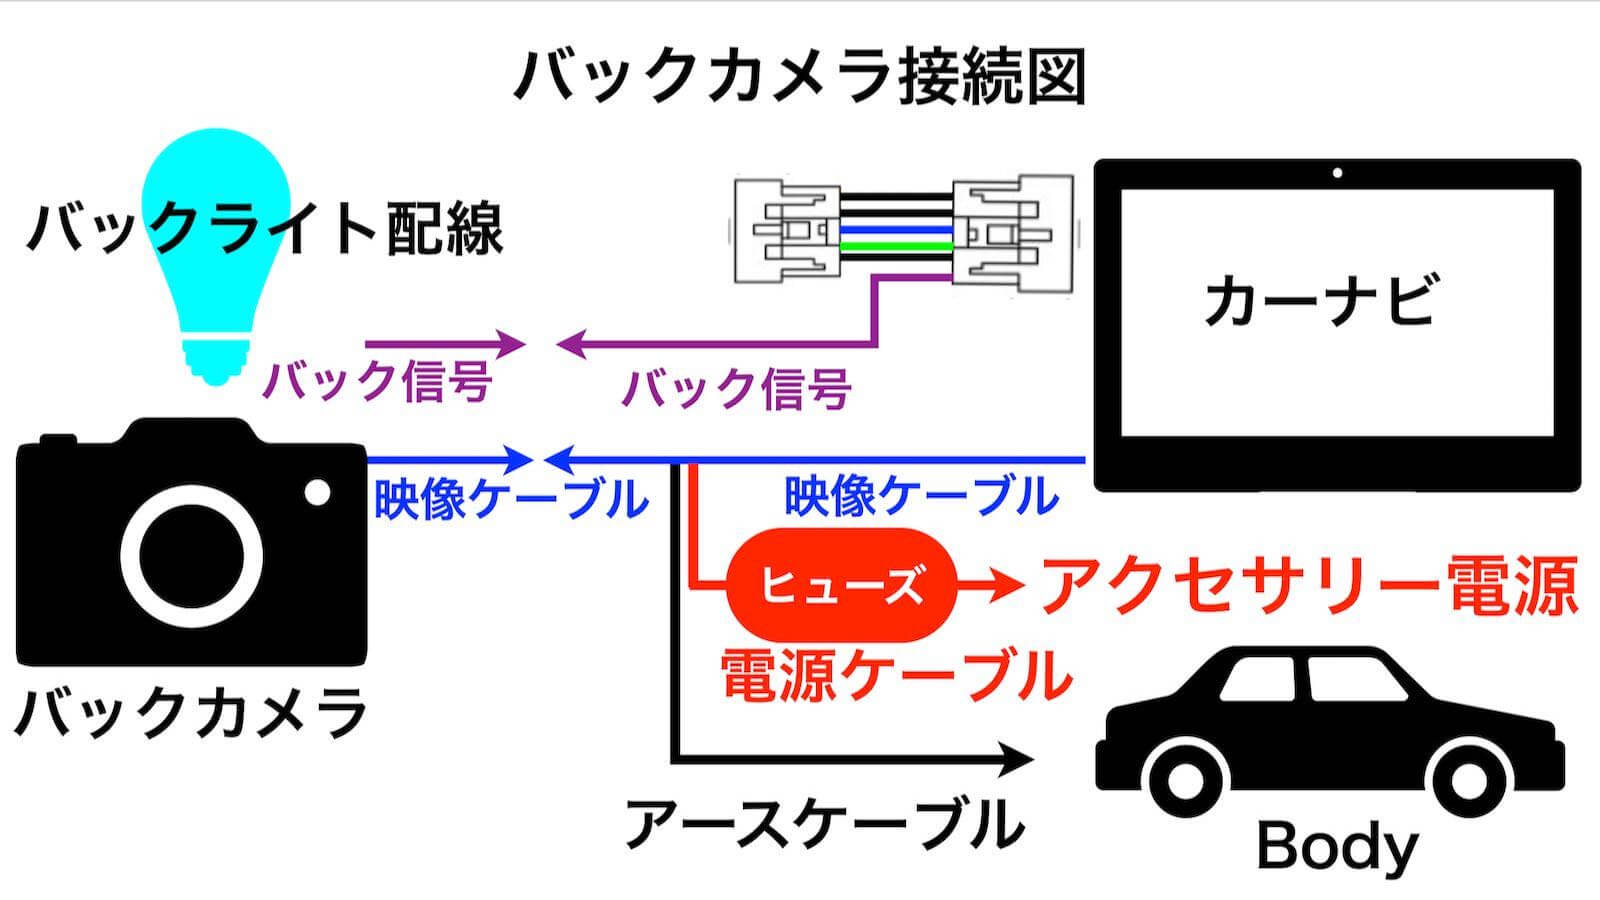 Raku Navi back camera connection diagram